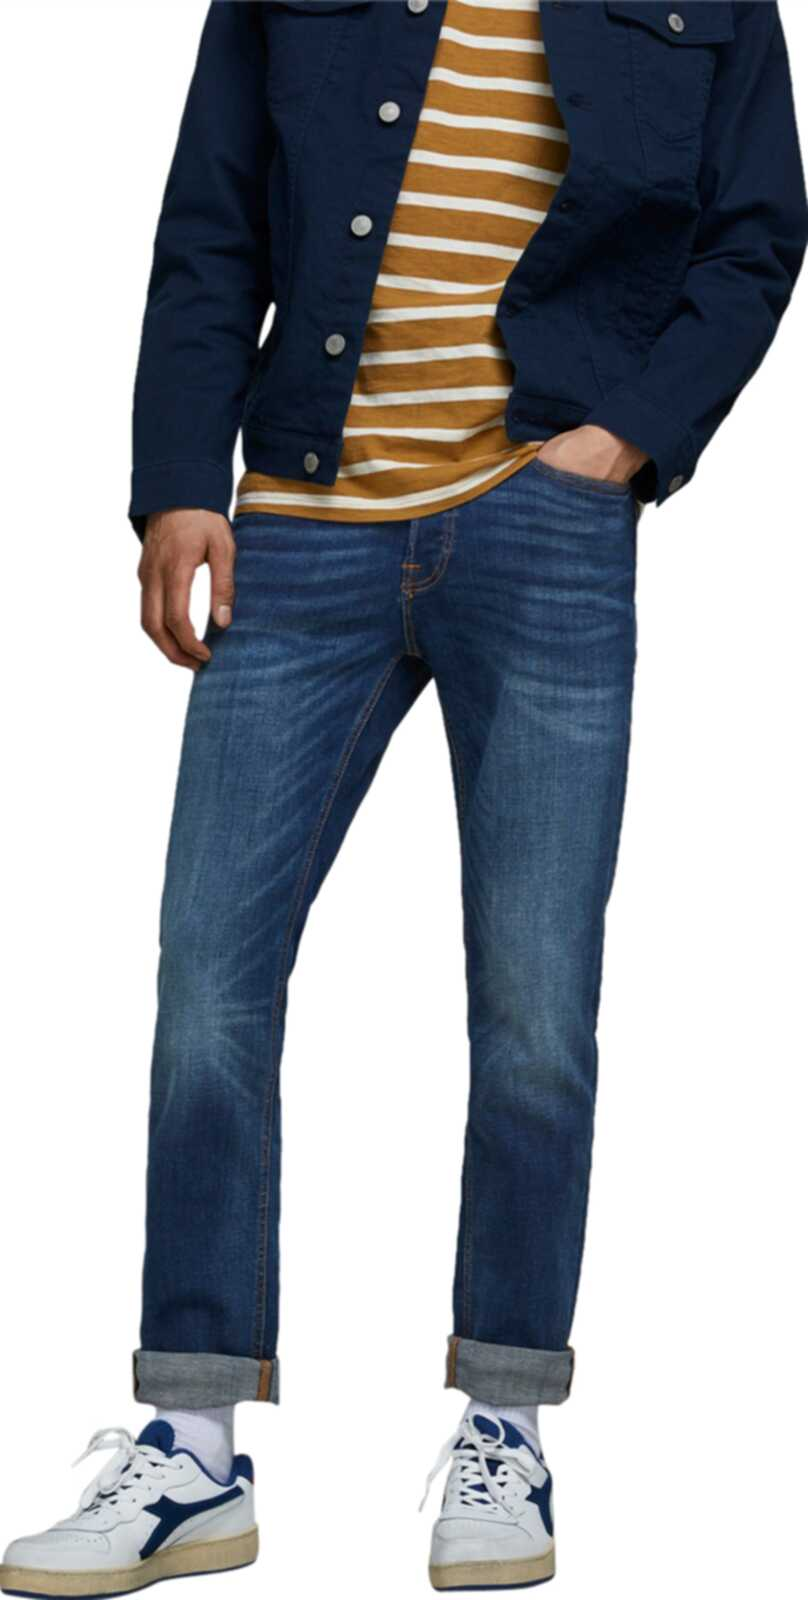 Jack & Jones Tim Slim Fit 782 Denim Jeans	Blue Denim